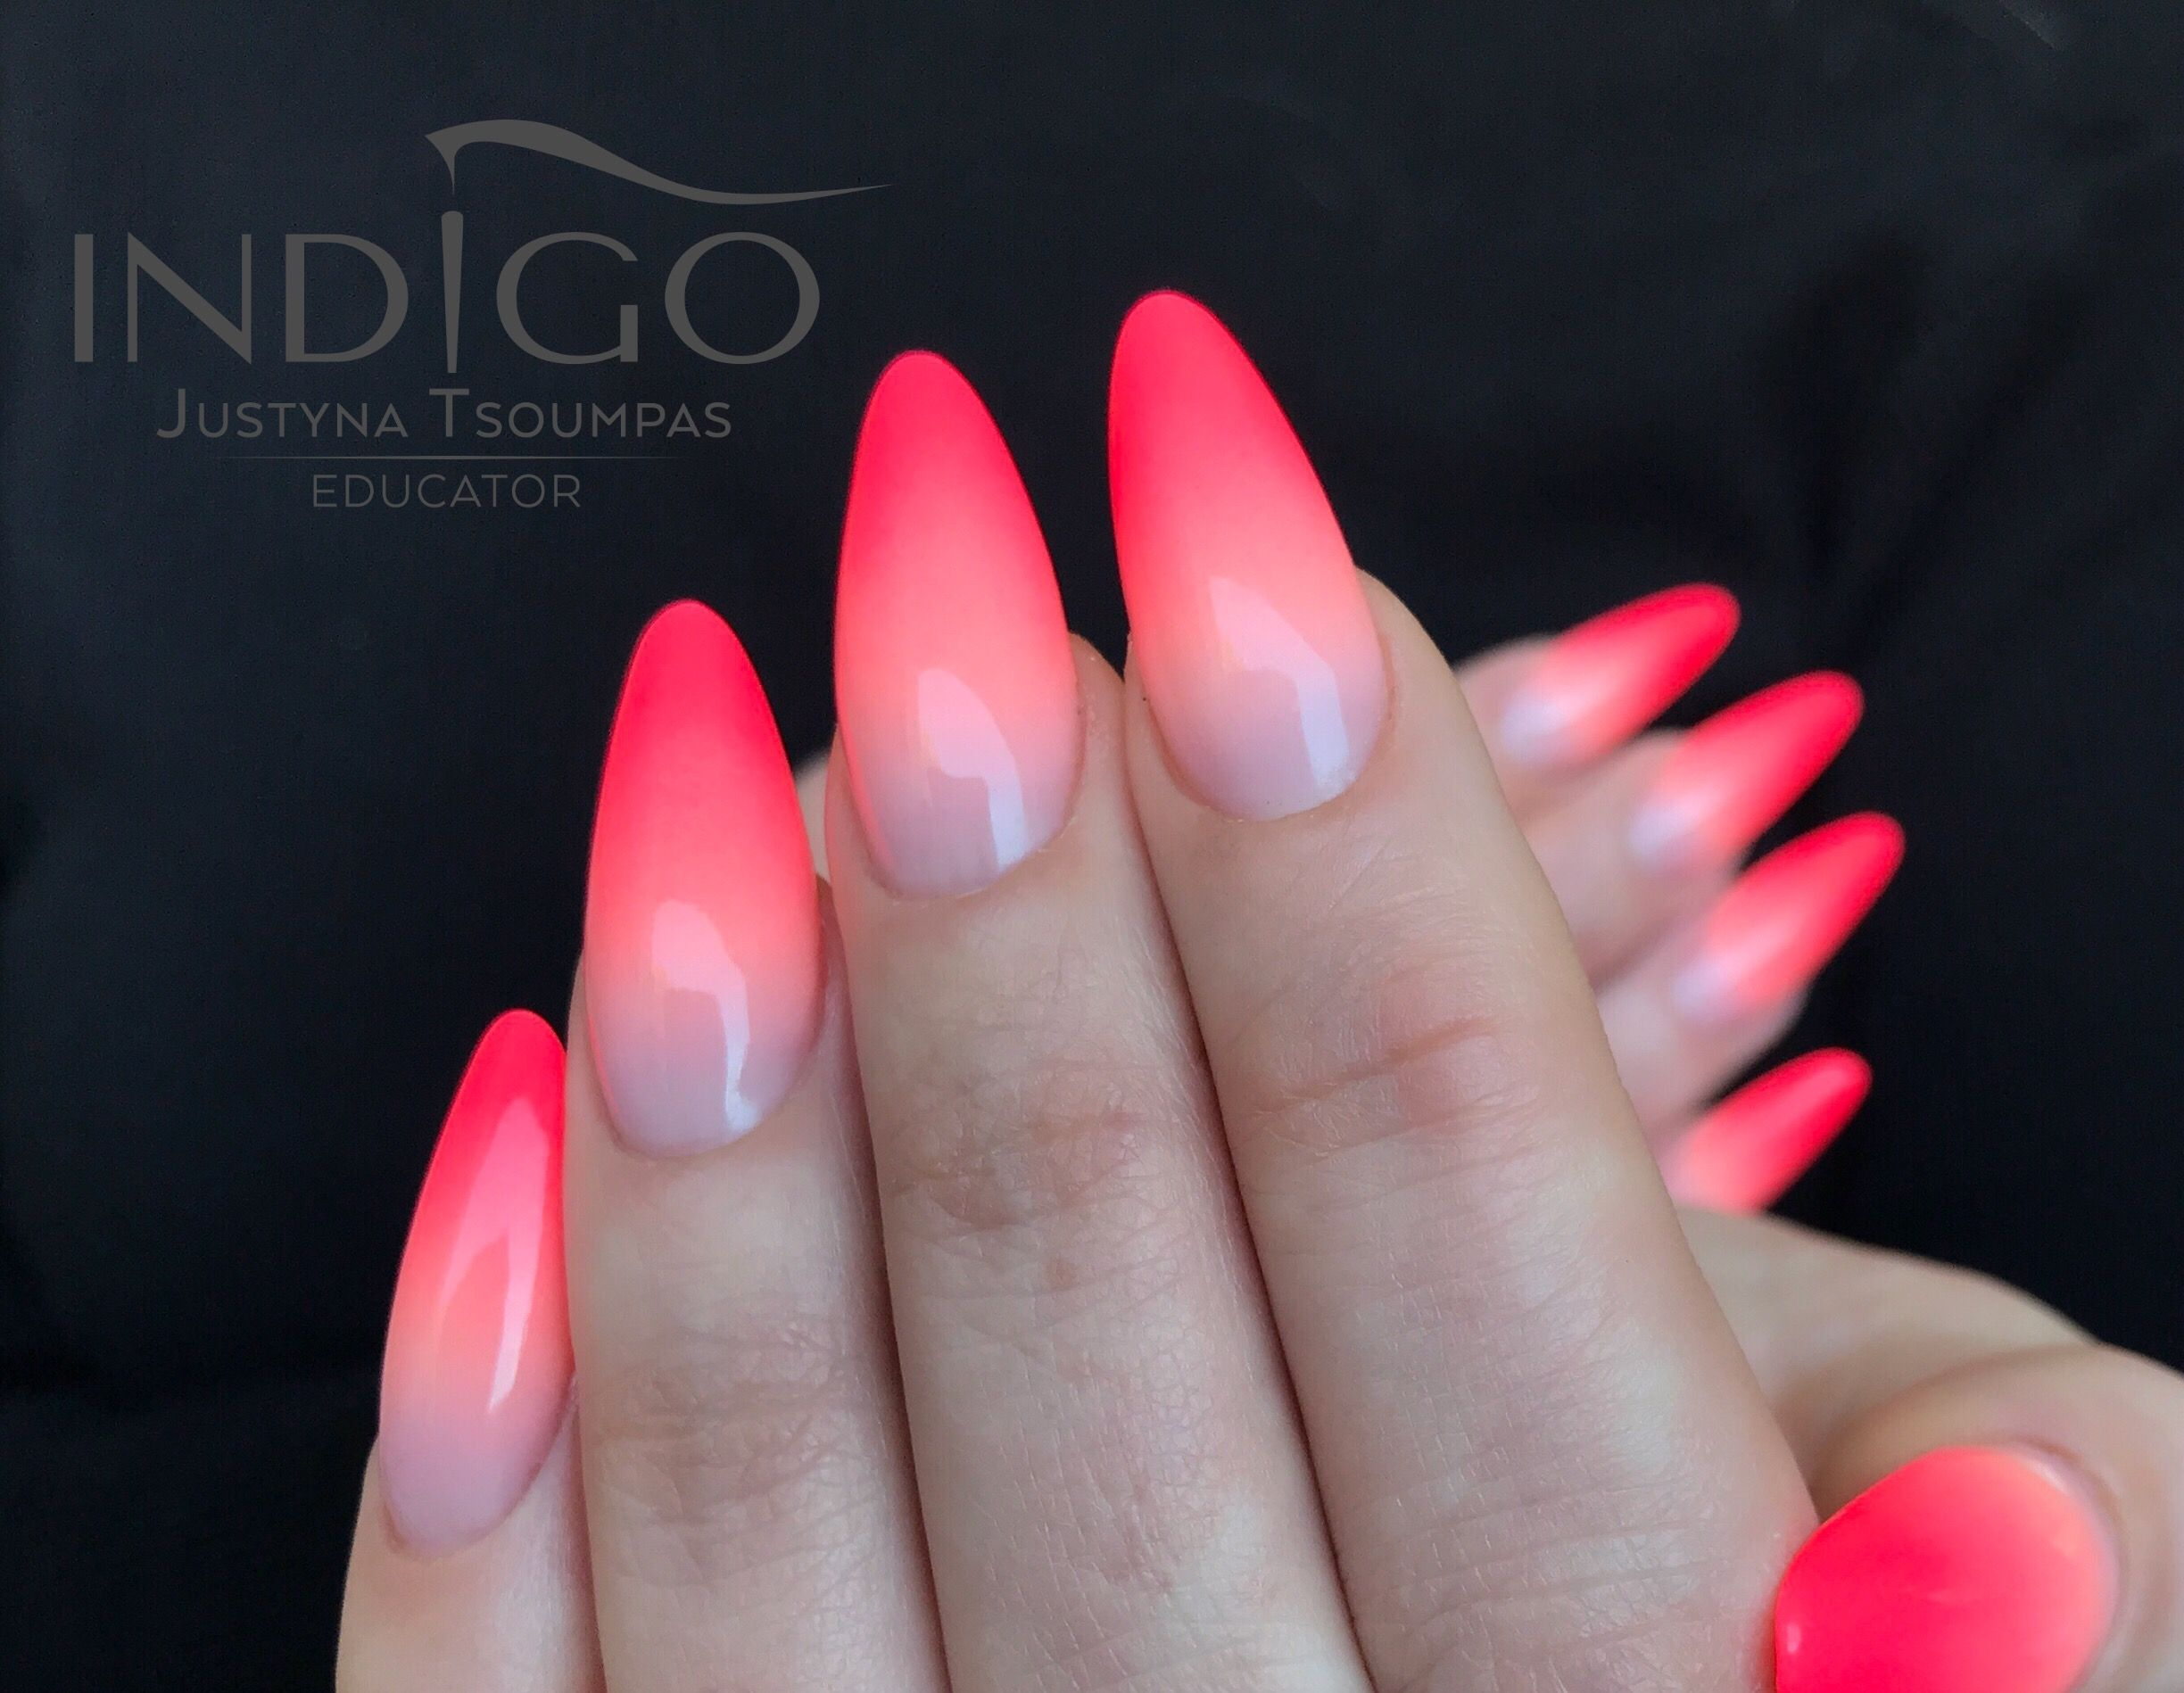 Neon Ombre Indigo Nails Pink Ombre Nails Ombre Nails Nail Designs Hot Pink